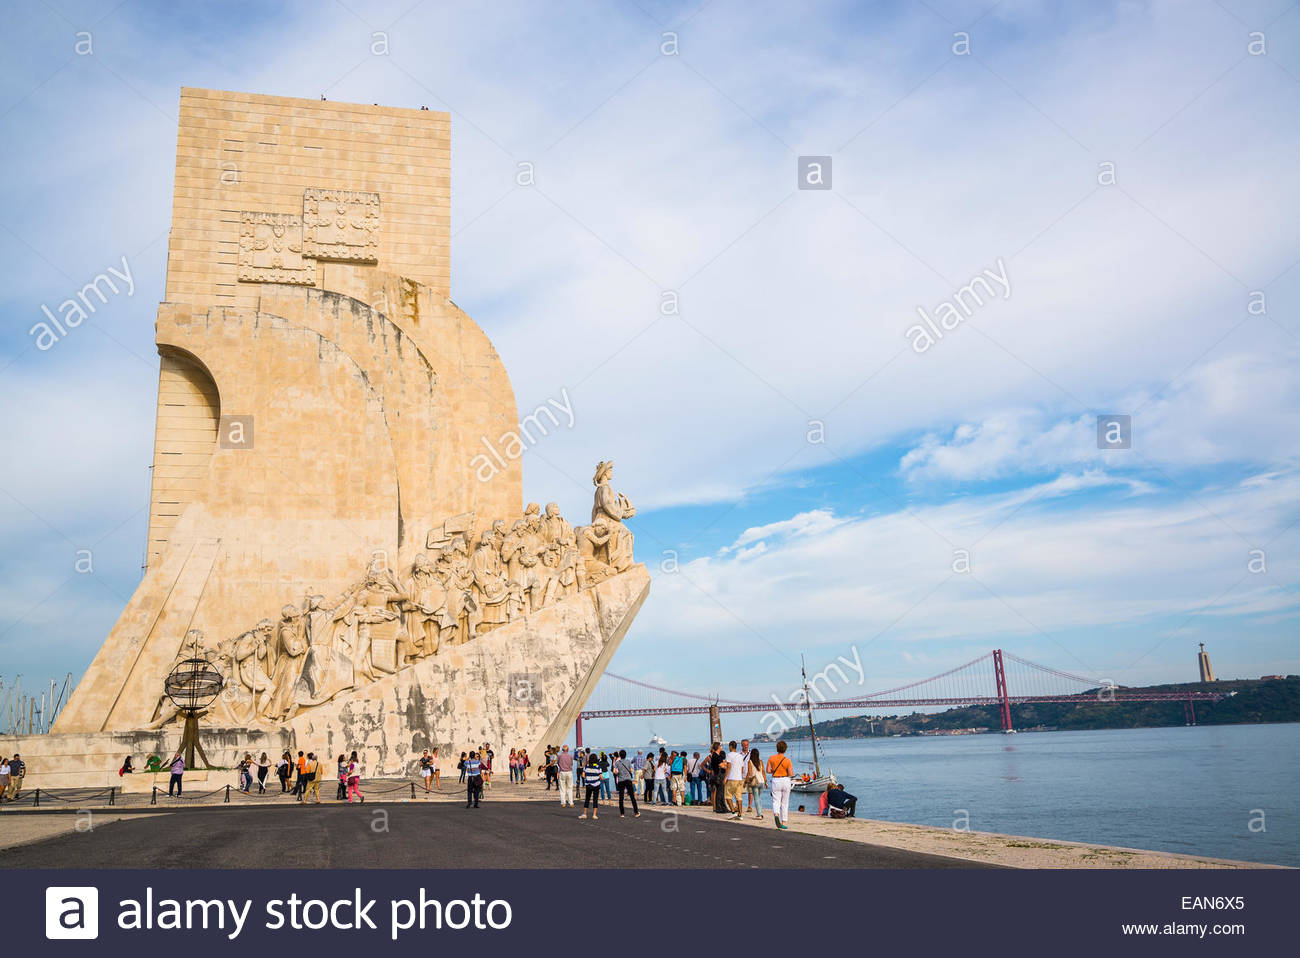 Monument to the Discoveries, Belem district, Lisbon, Portugal - Stock Image